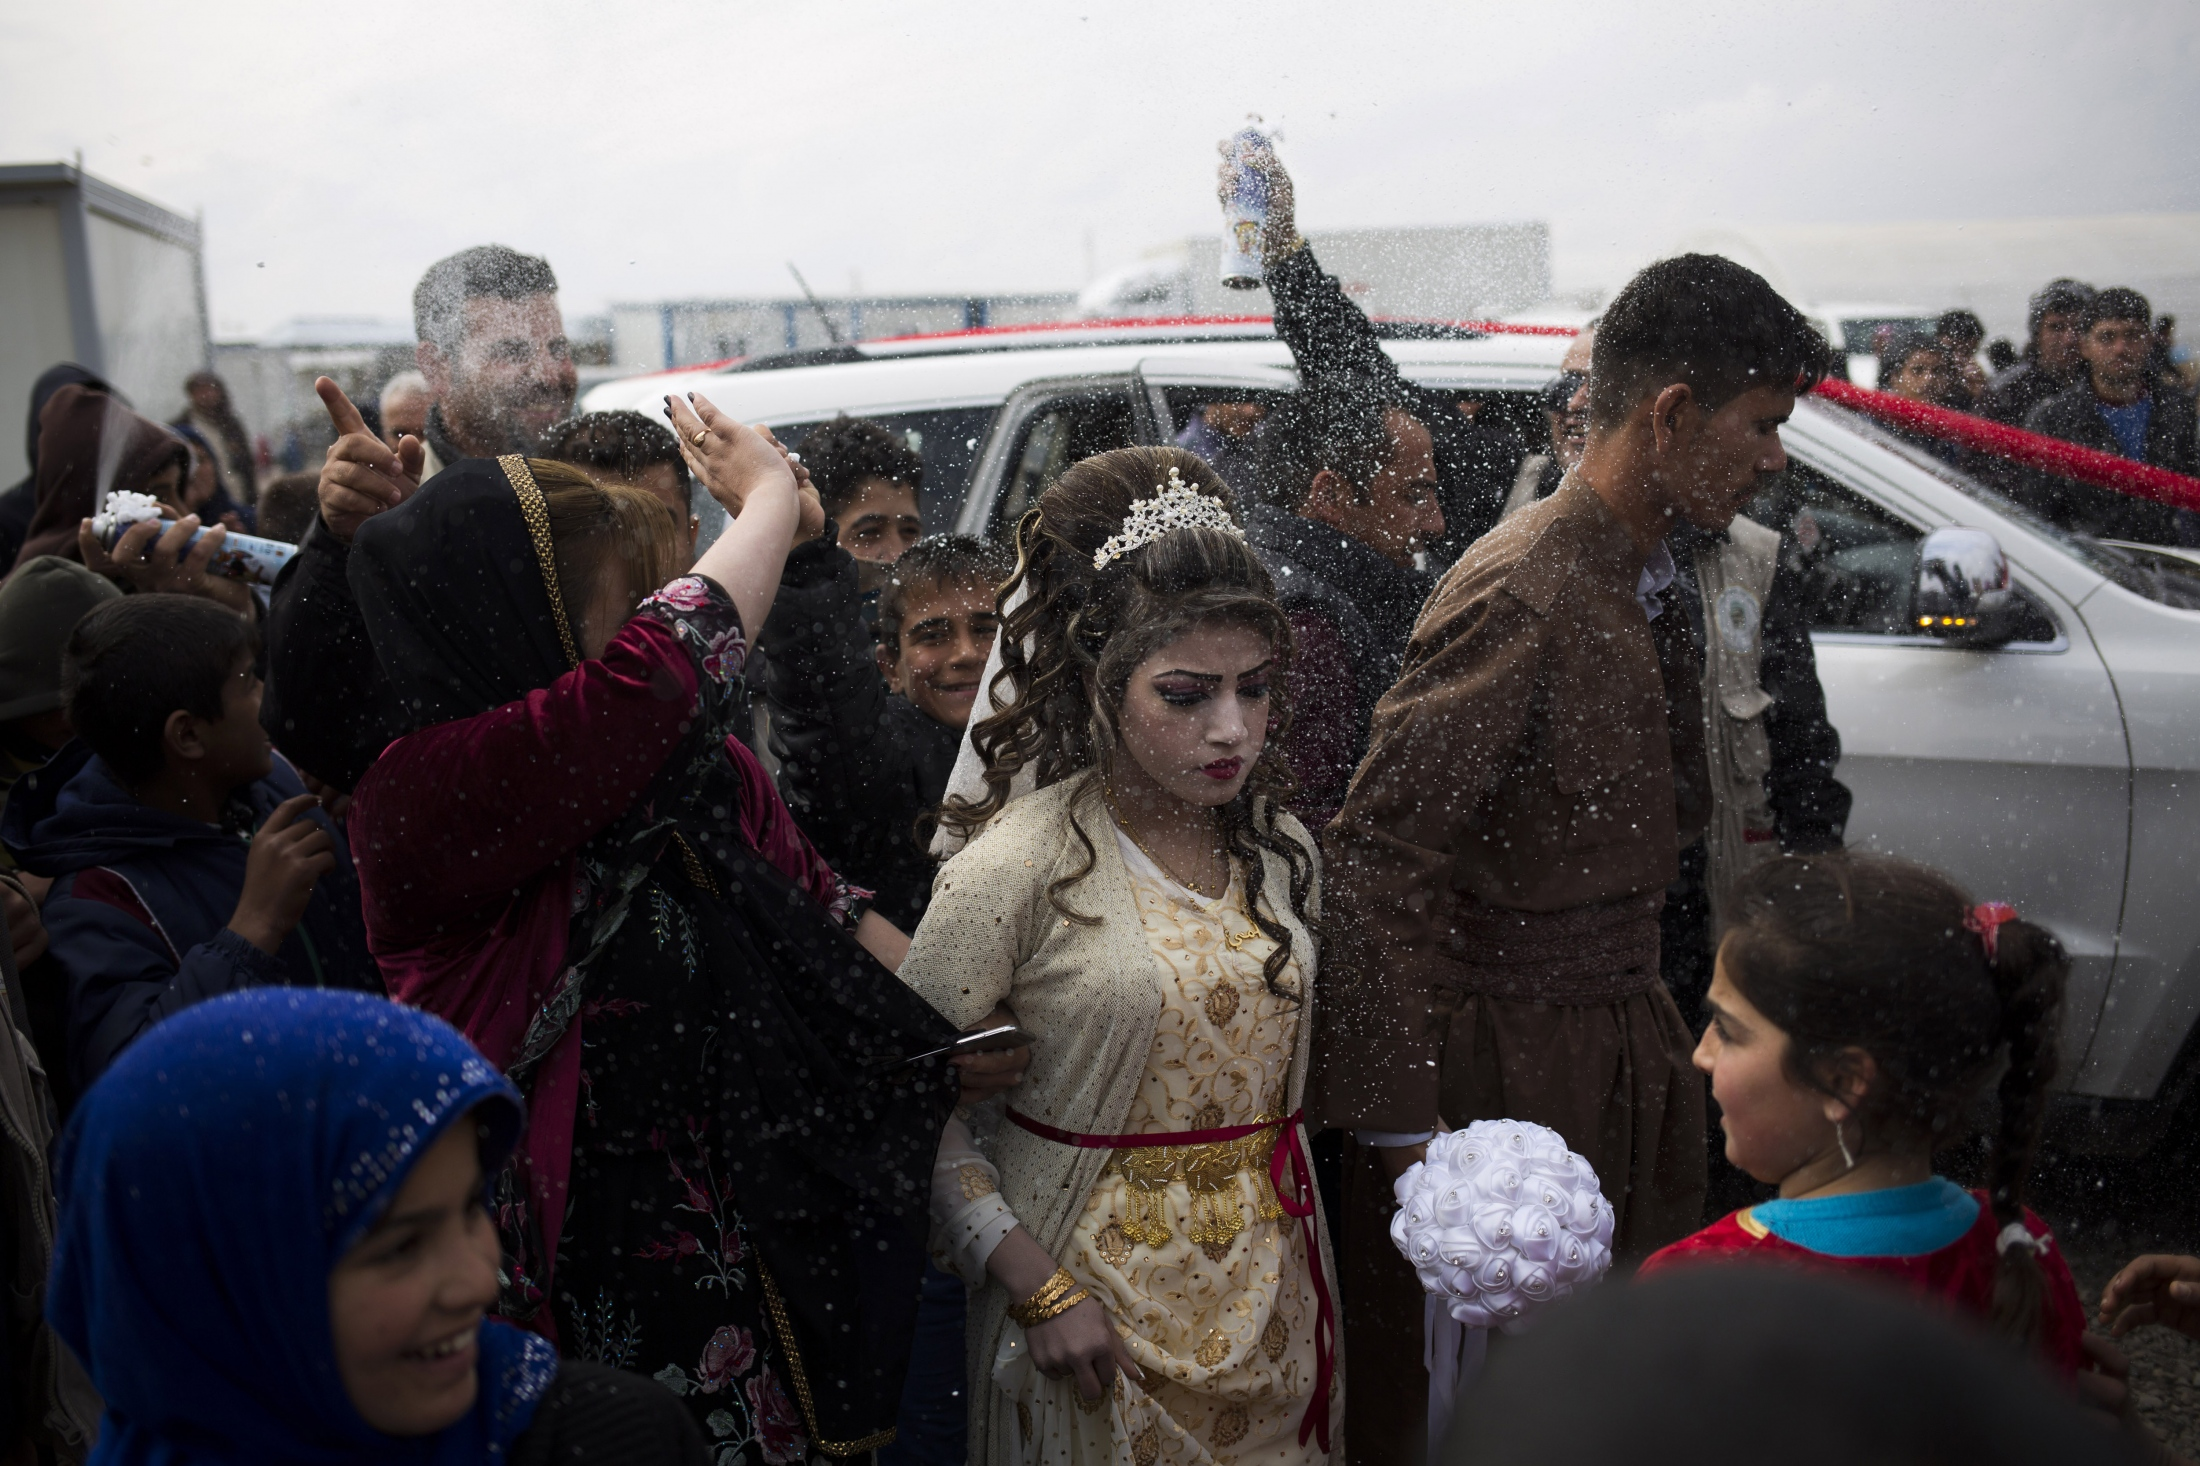 Hussein Zeino Danoon (25) and Shahad Ahmed Abed (16) arrive at the Khazer camp for displaced from Mosul for their wedding. The legal age for marriage in Iraq is 18, or 15 with parental permission. The two celebrated their wedding less than a month after fleeing the fighting in Mosul.